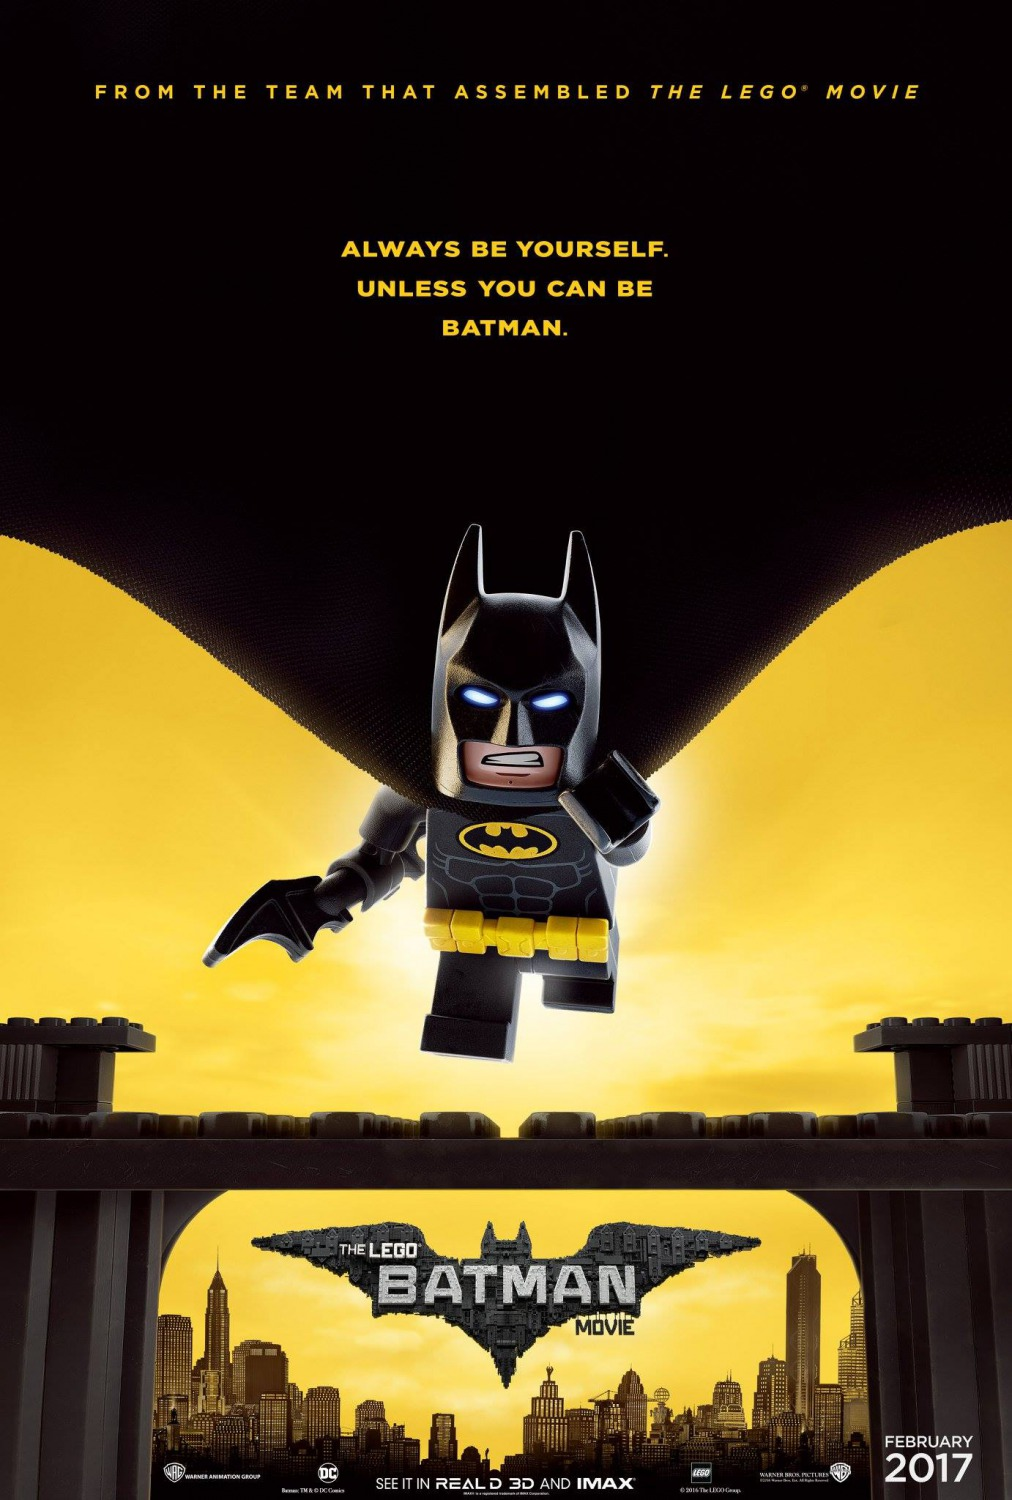 8 - The LEGO Batman Movie